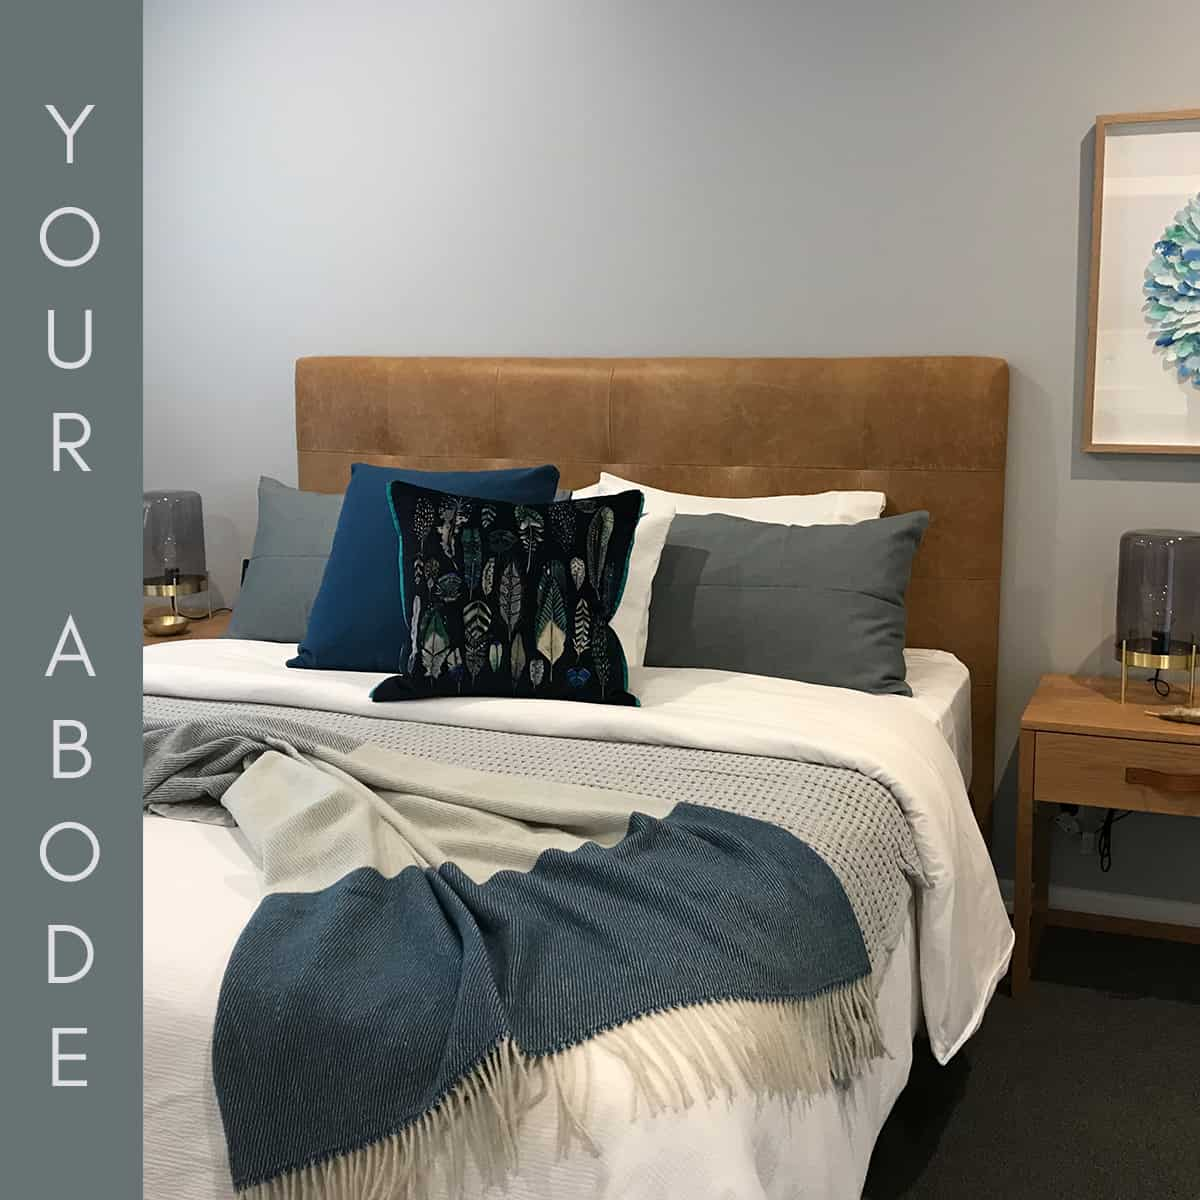 Your Abode